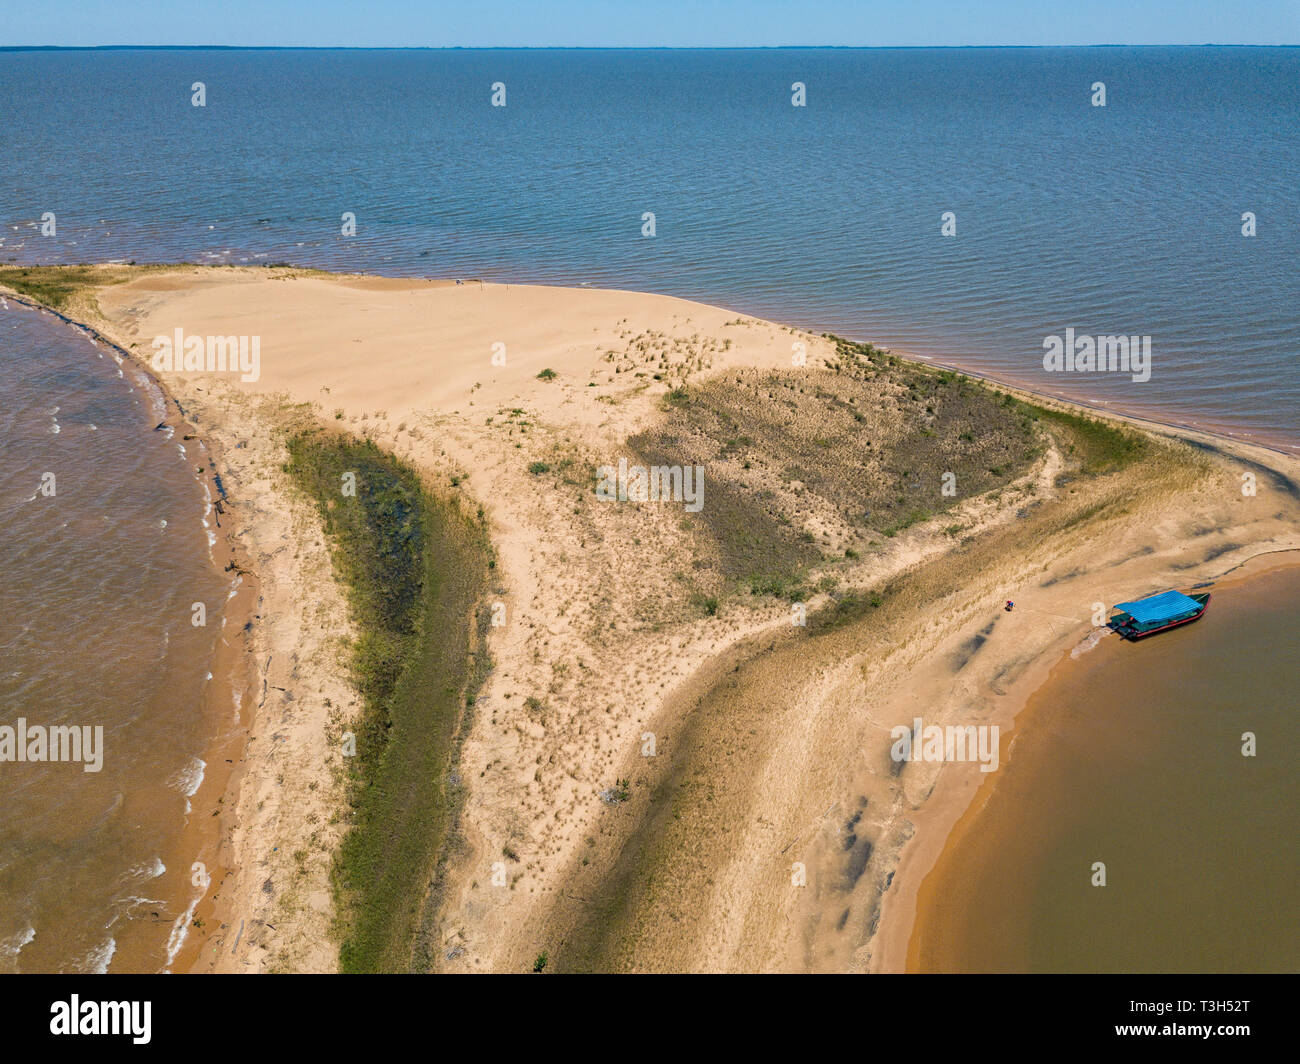 Aerial view from a height of 50 meters, from the dune island 'Las Dunas de San Cosme y Damian' in the middle of the Rio Parana near the city of Encarn - Stock Image